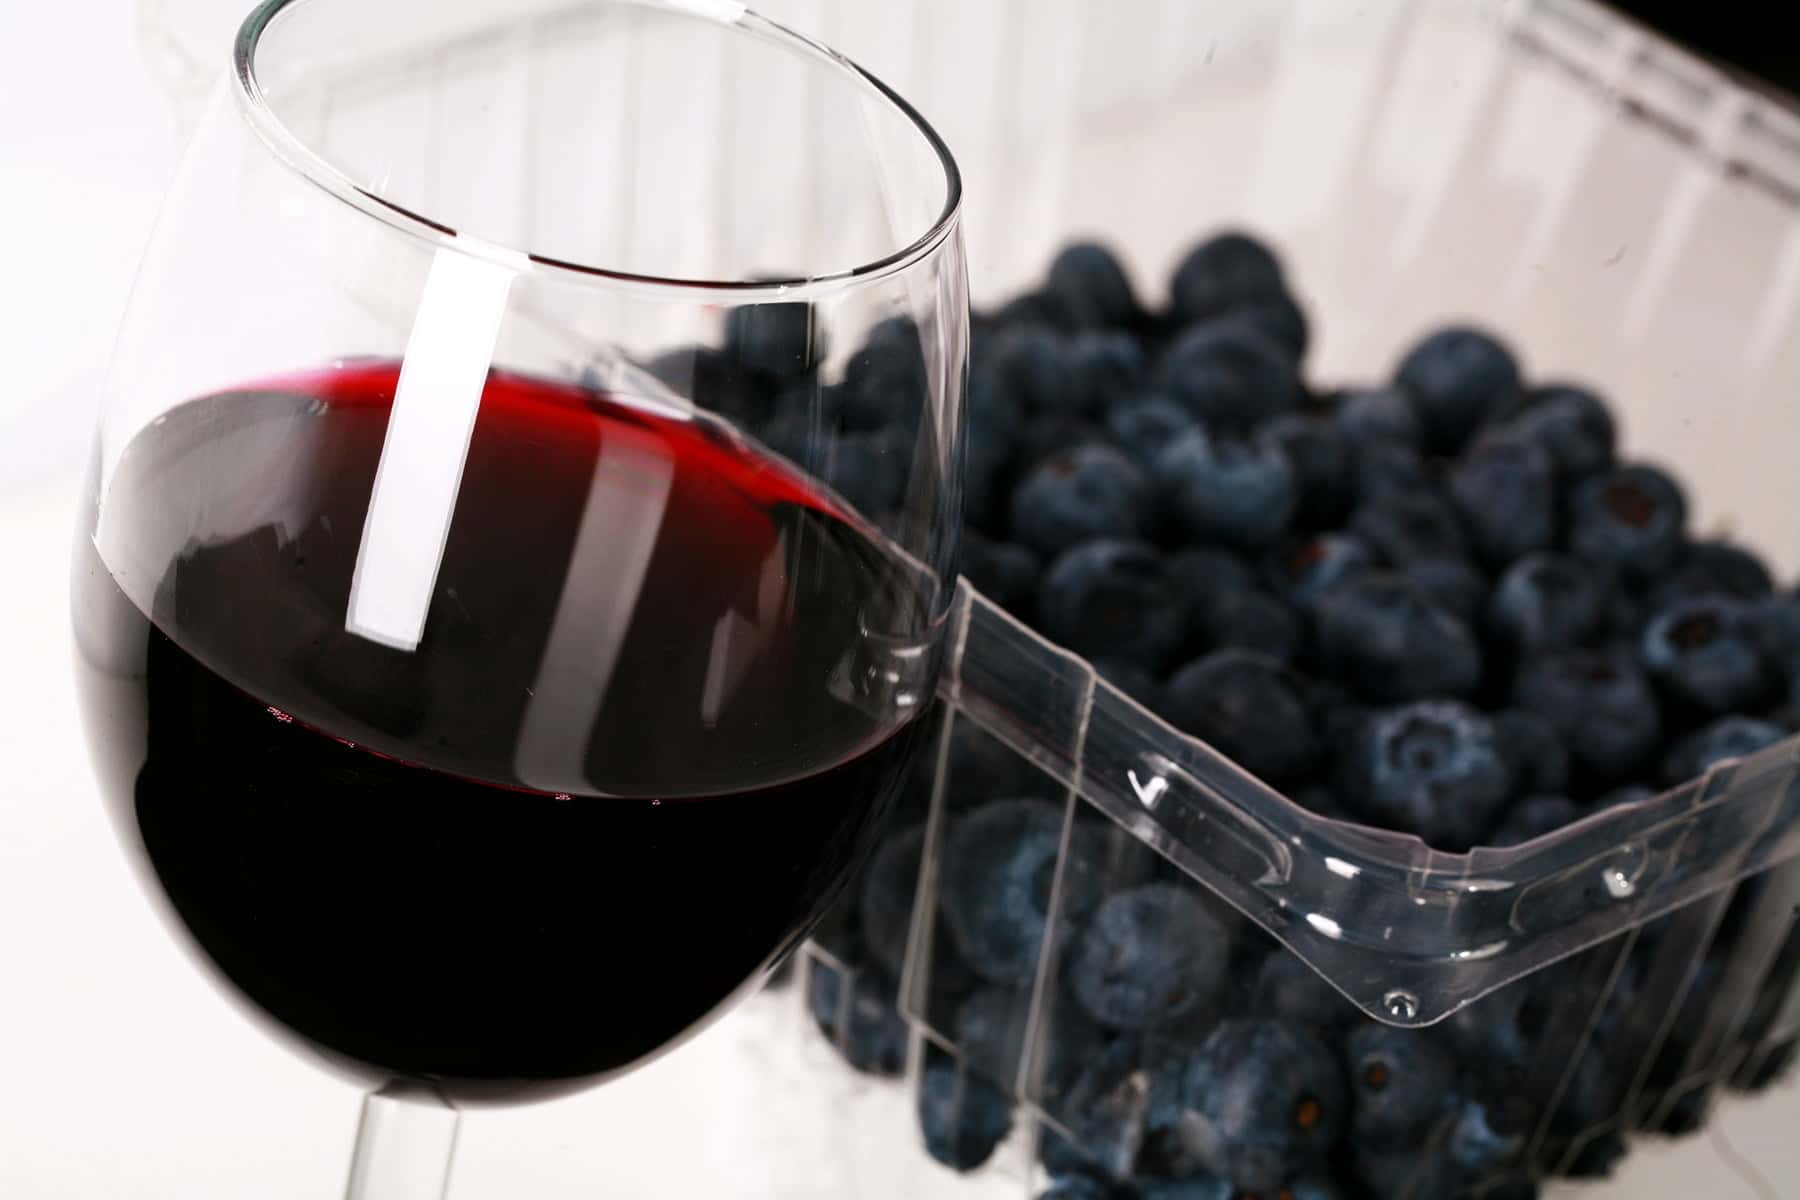 A glass of deep purple wine in front of a pint of fresh blueberries.